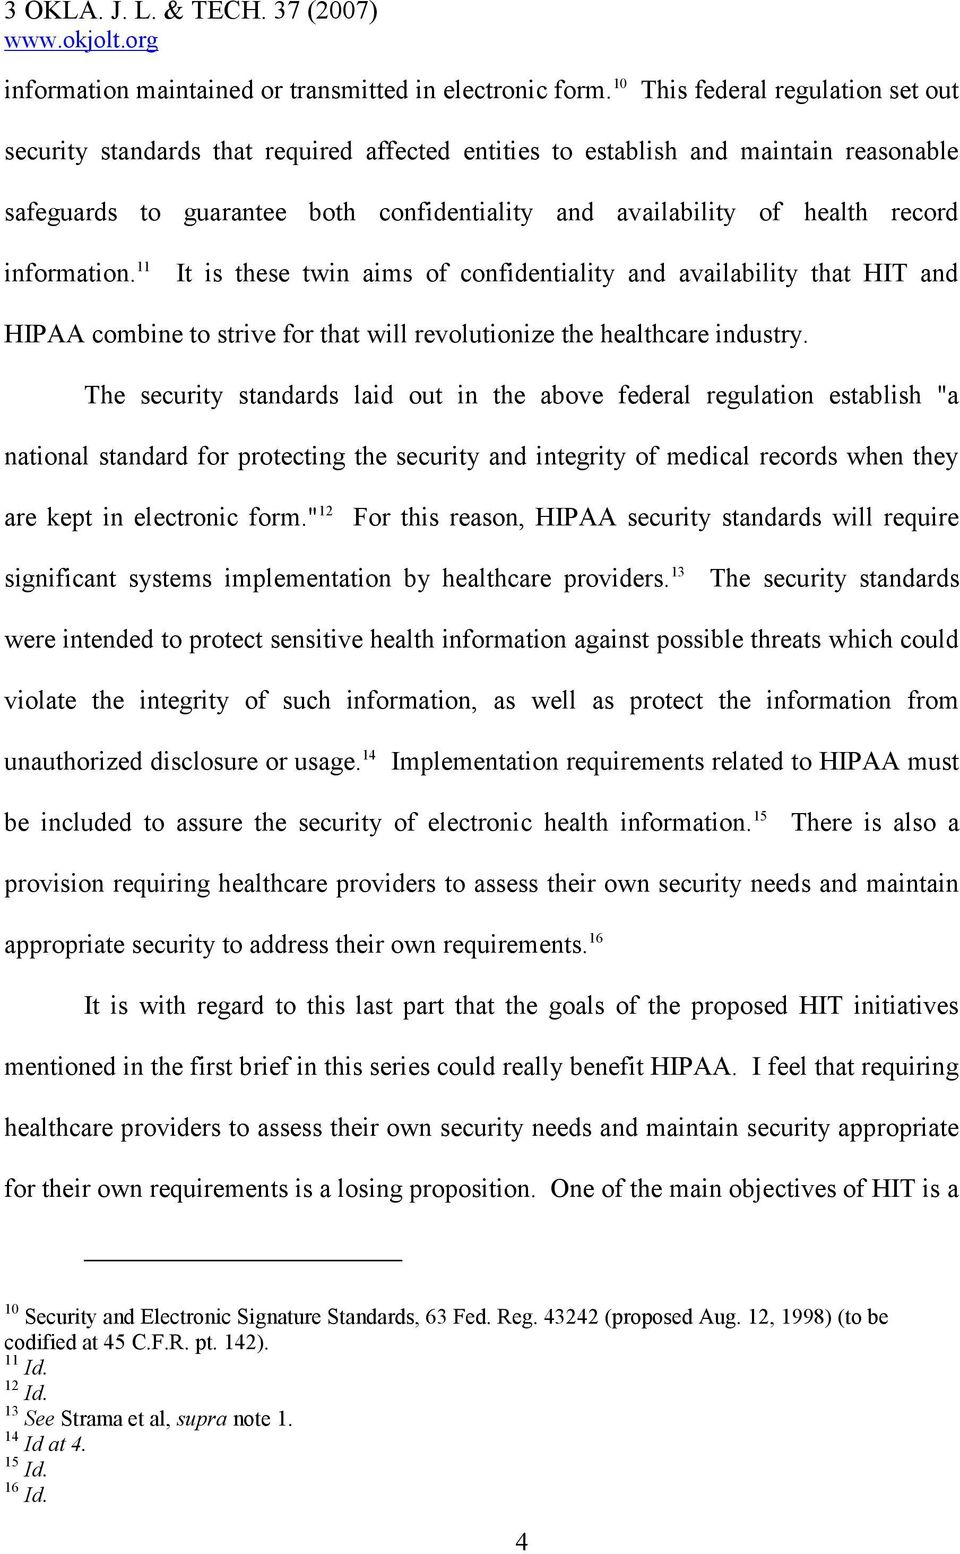 record information. 11 It is these twin aims of confidentiality and availability that HIT and HIPAA combine to strive for that will revolutionize the healthcare industry.